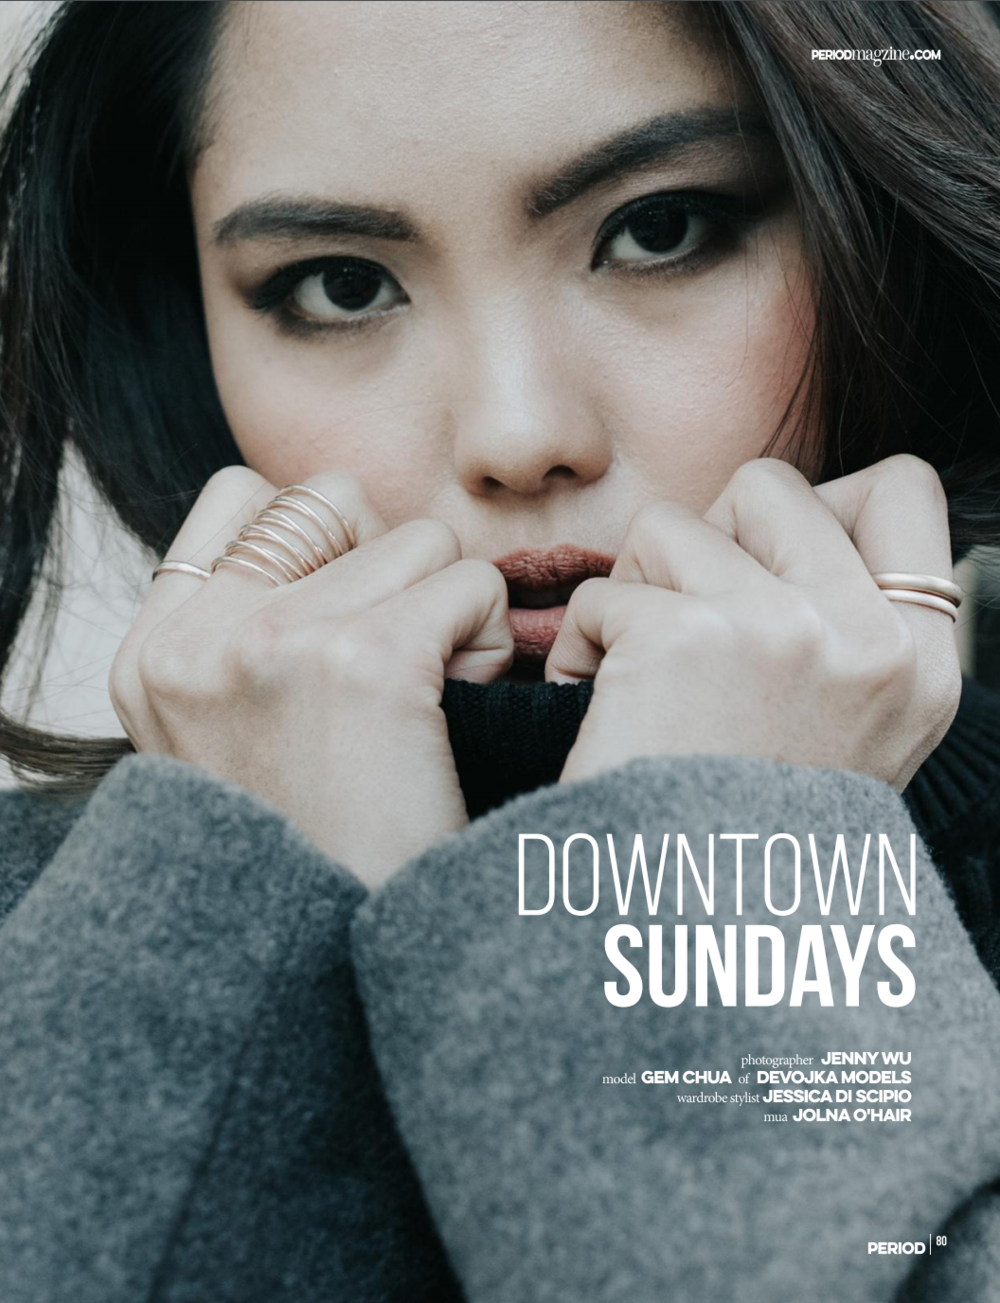 Downtown Sundays editorial: Photography Jenny Wu Gem wearing grey trench styled by Jess Discipio